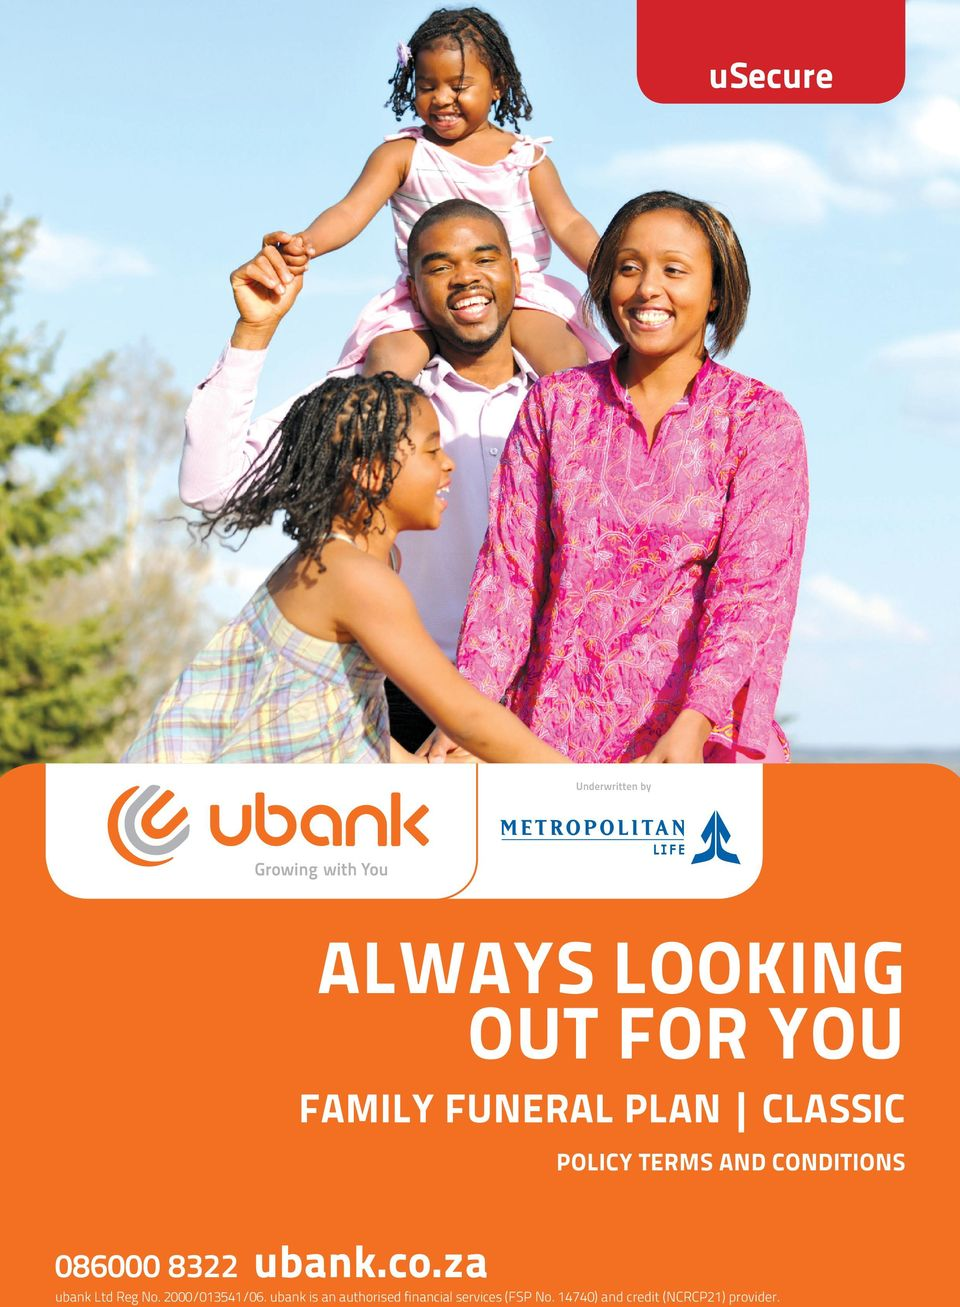 ubank.co.za ubank Ltd Reg No. 2000/013541/06.